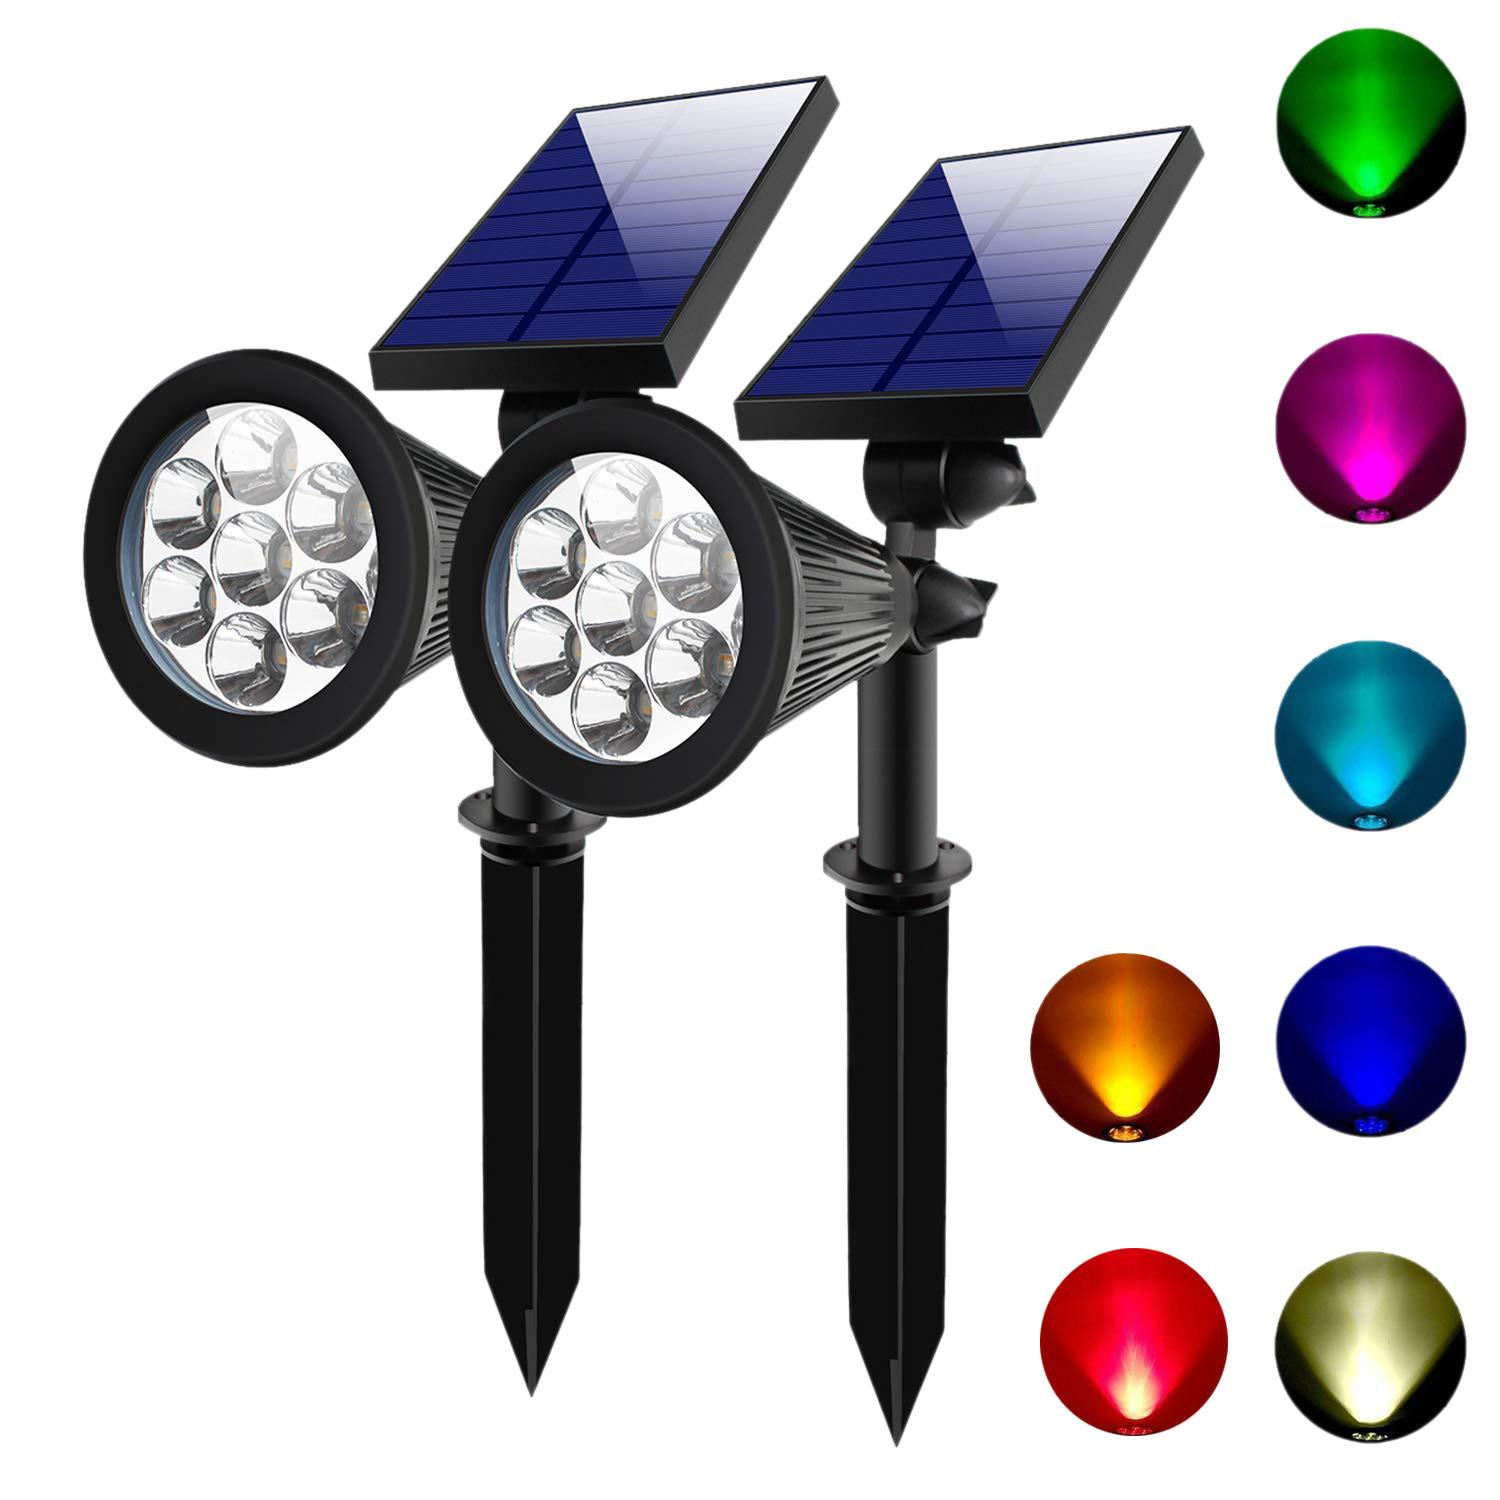 2 SETS 7 LED Solar Spotlights Outdoor Solar Lights IP65 Waterproof Color Spot Lights For Garden Landscape Solar Wall Lights